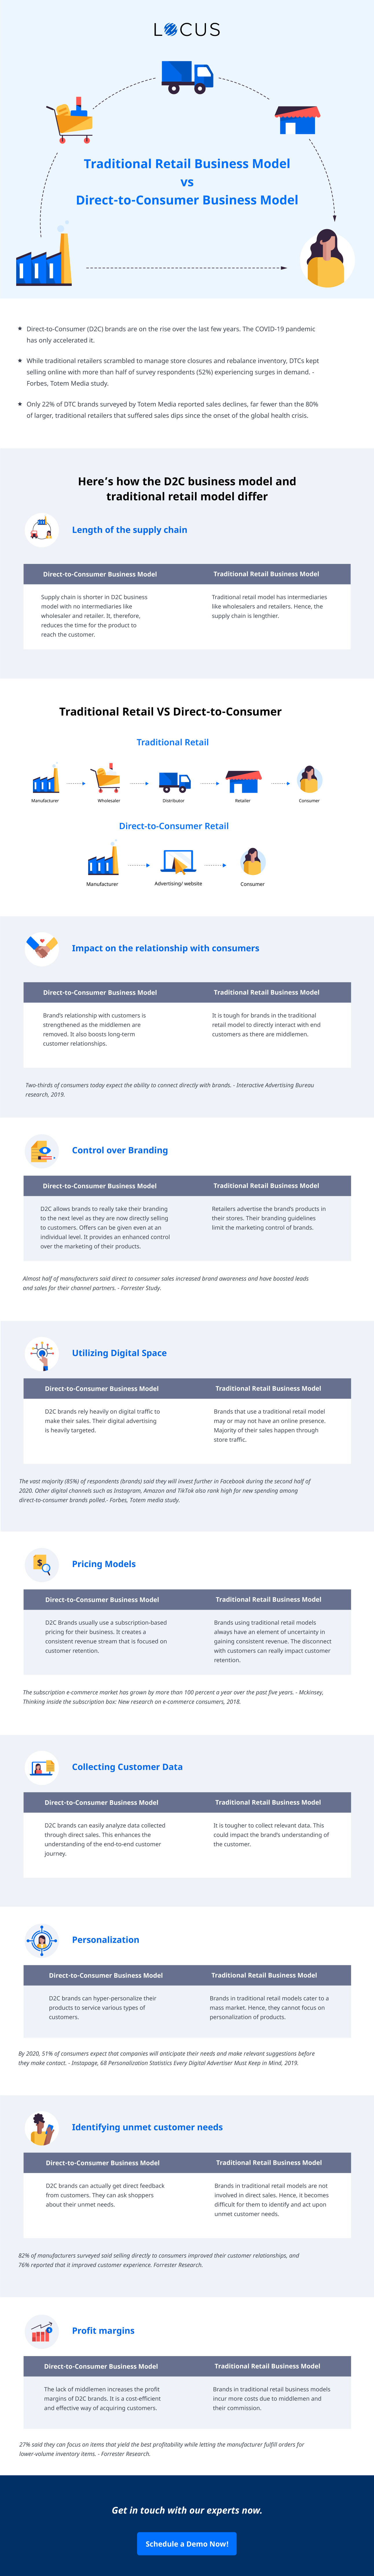 Direct-to-Consumer Vs Traditional Retail Business Model - Infographics